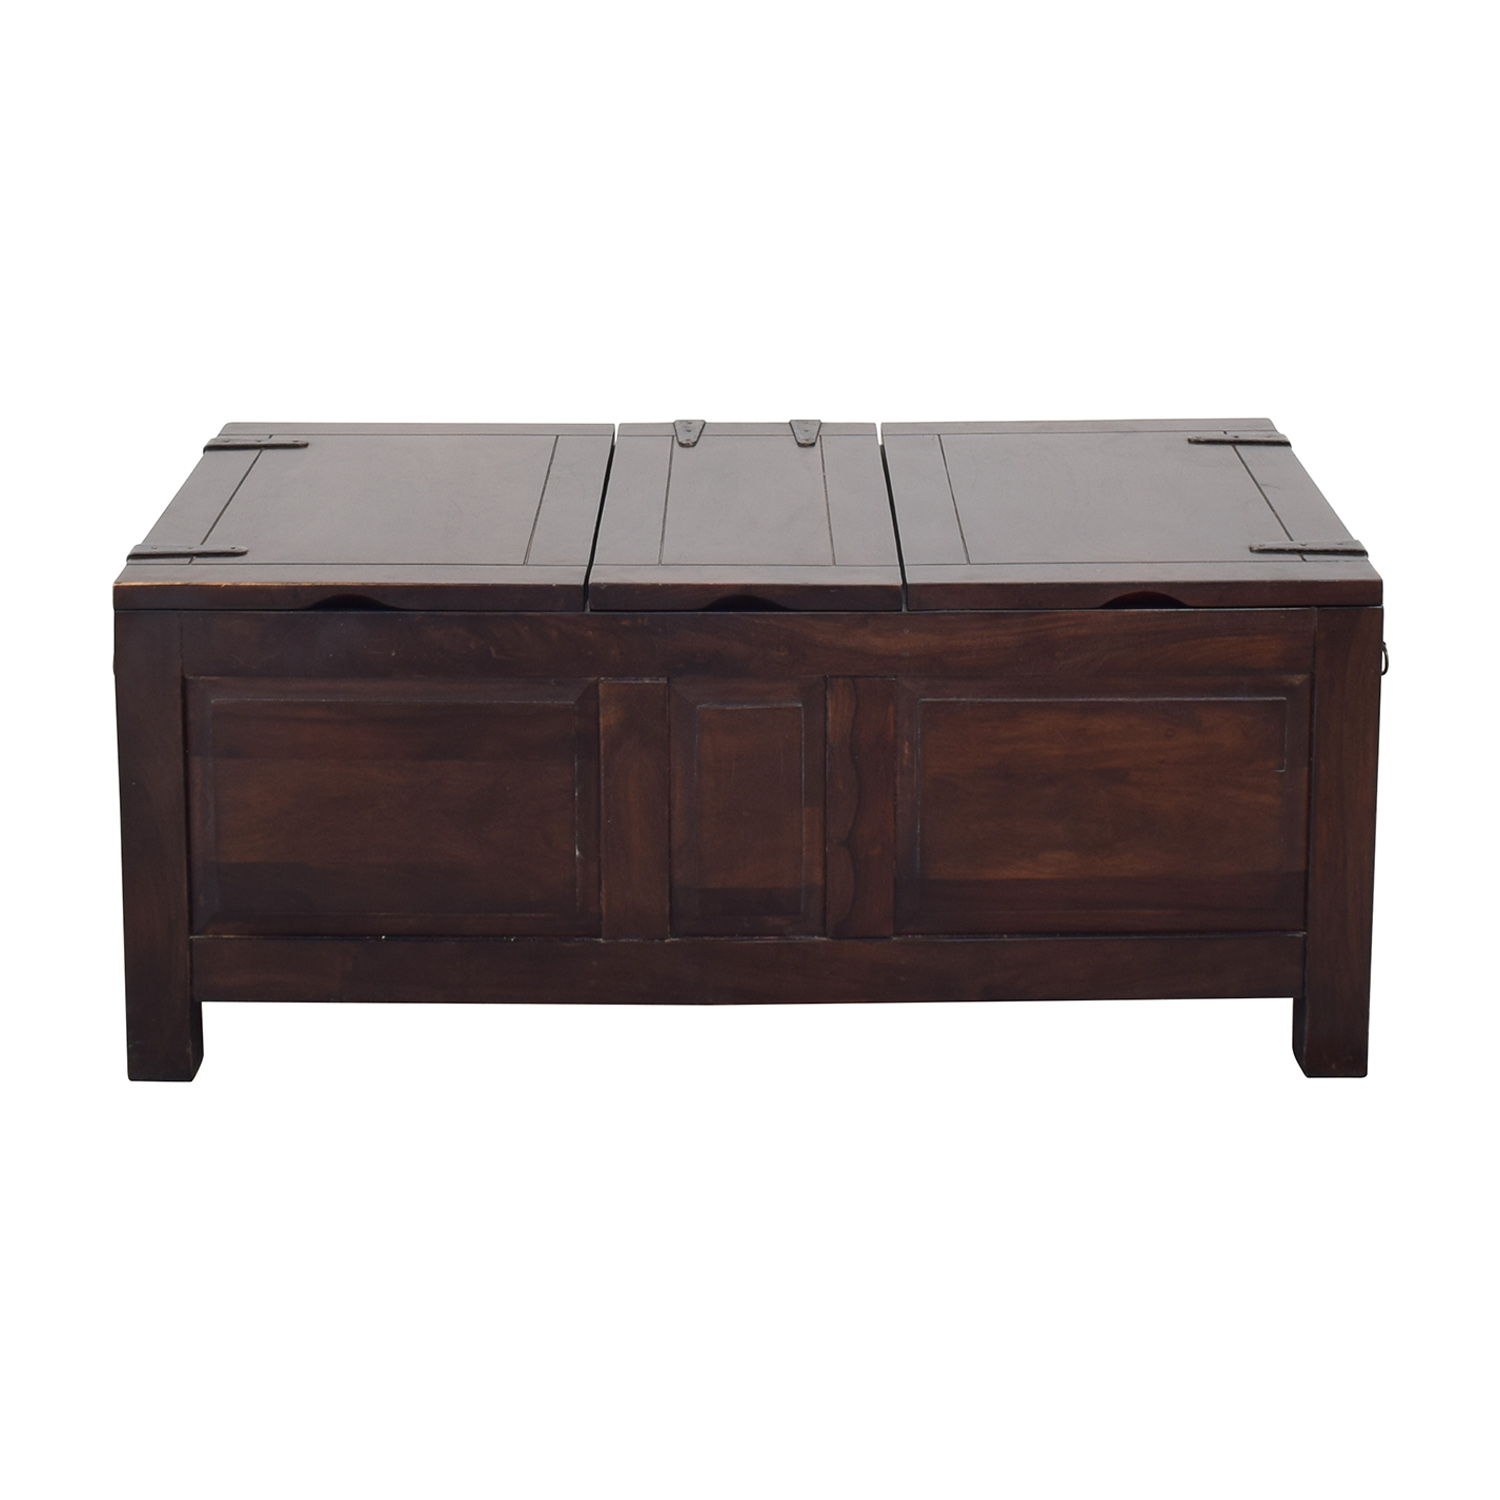 28 off crate barrel crate barrel storage coffee table trunk tables